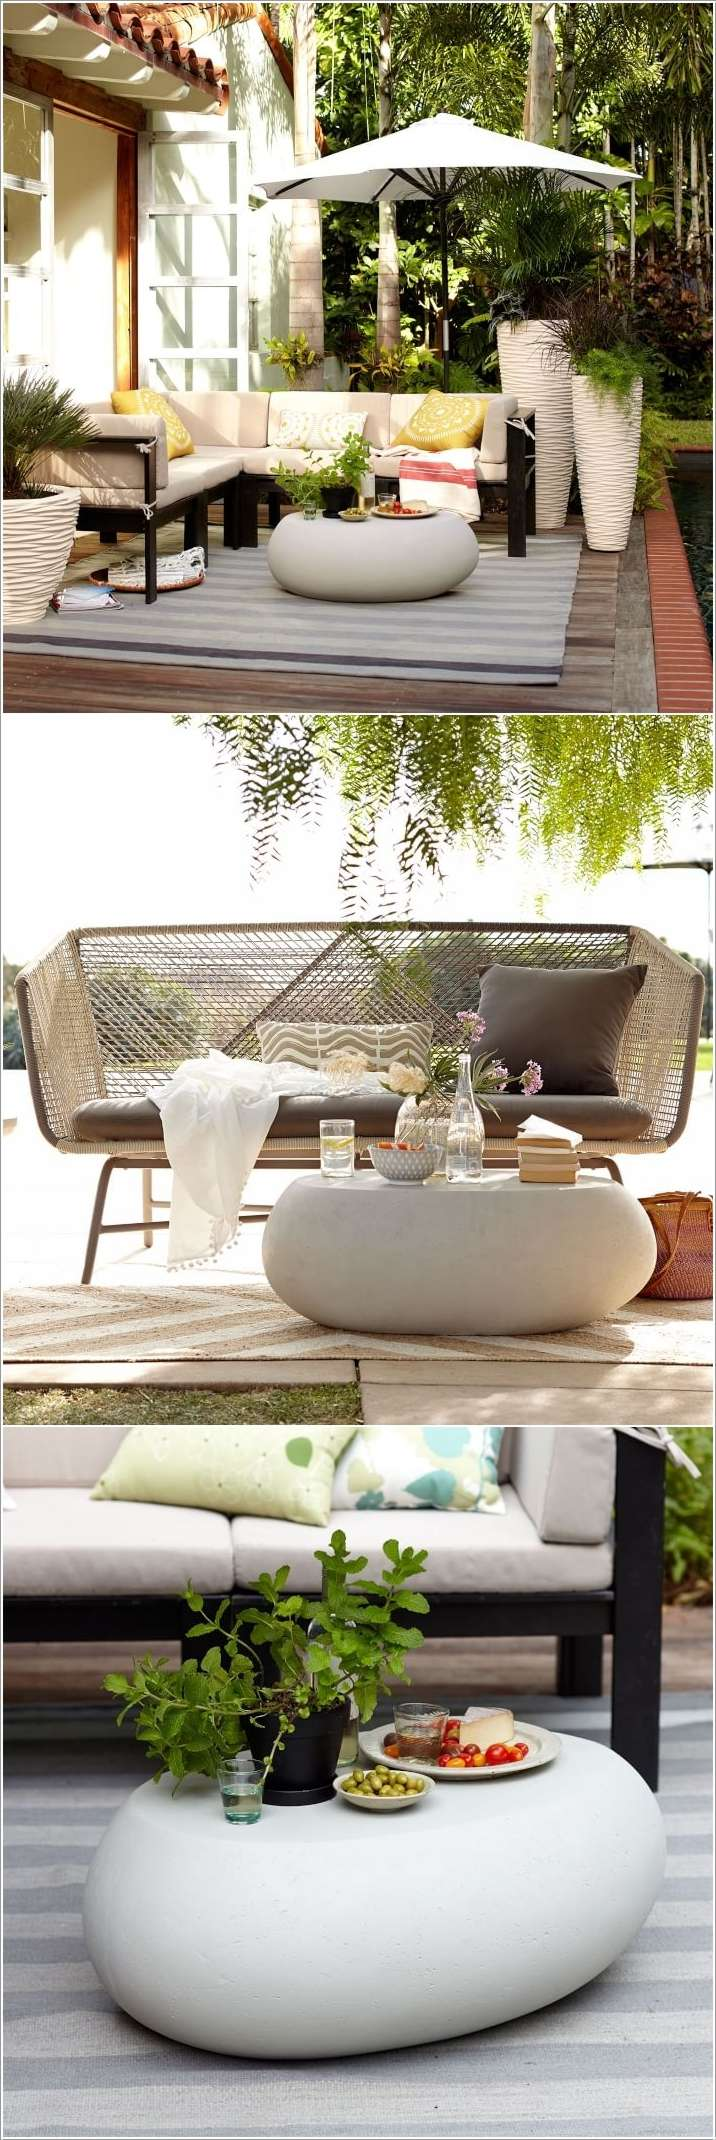 Awesome Outdoor Coffee Table Designs For Your Home - West elm pebble coffee table